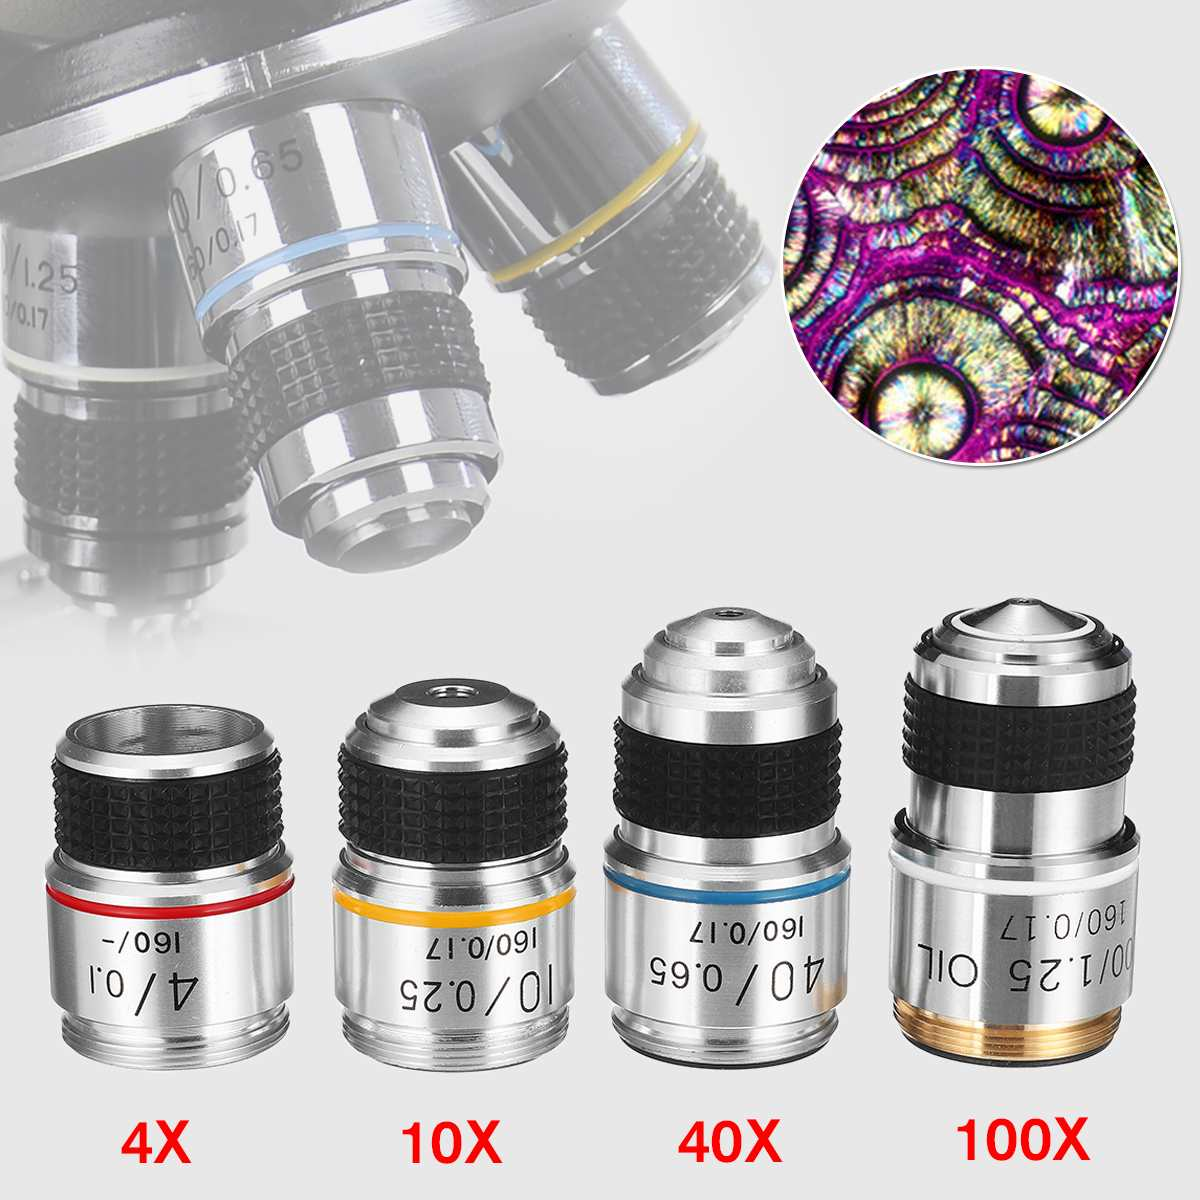 Worldwide delivery microscope 10x lens in NaBaRa Online